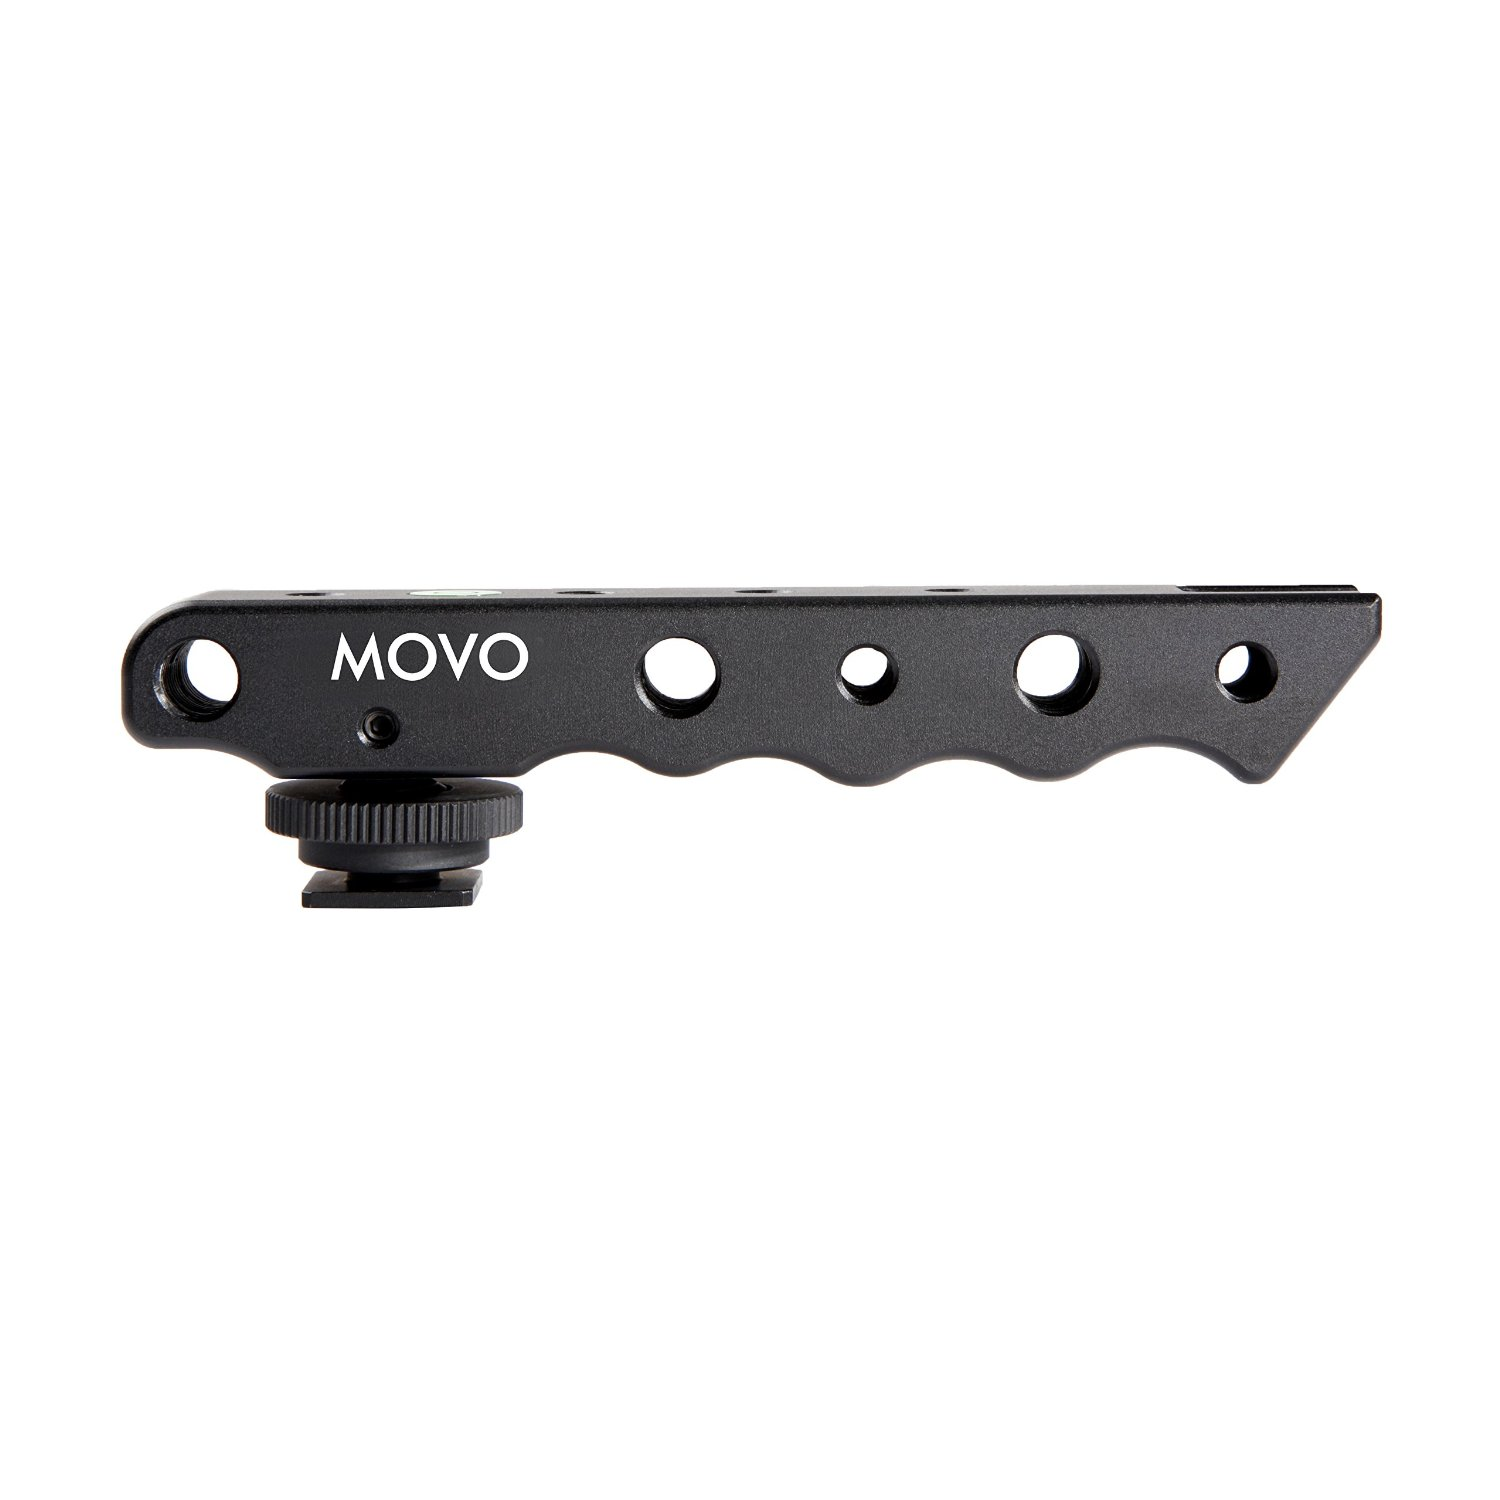 Olympus /& Pentax DSLR Cameras Movo Photo SVH6 Video Stabilizing Top Handle /& Cold Shoe Extender for Canon EOS Nikon